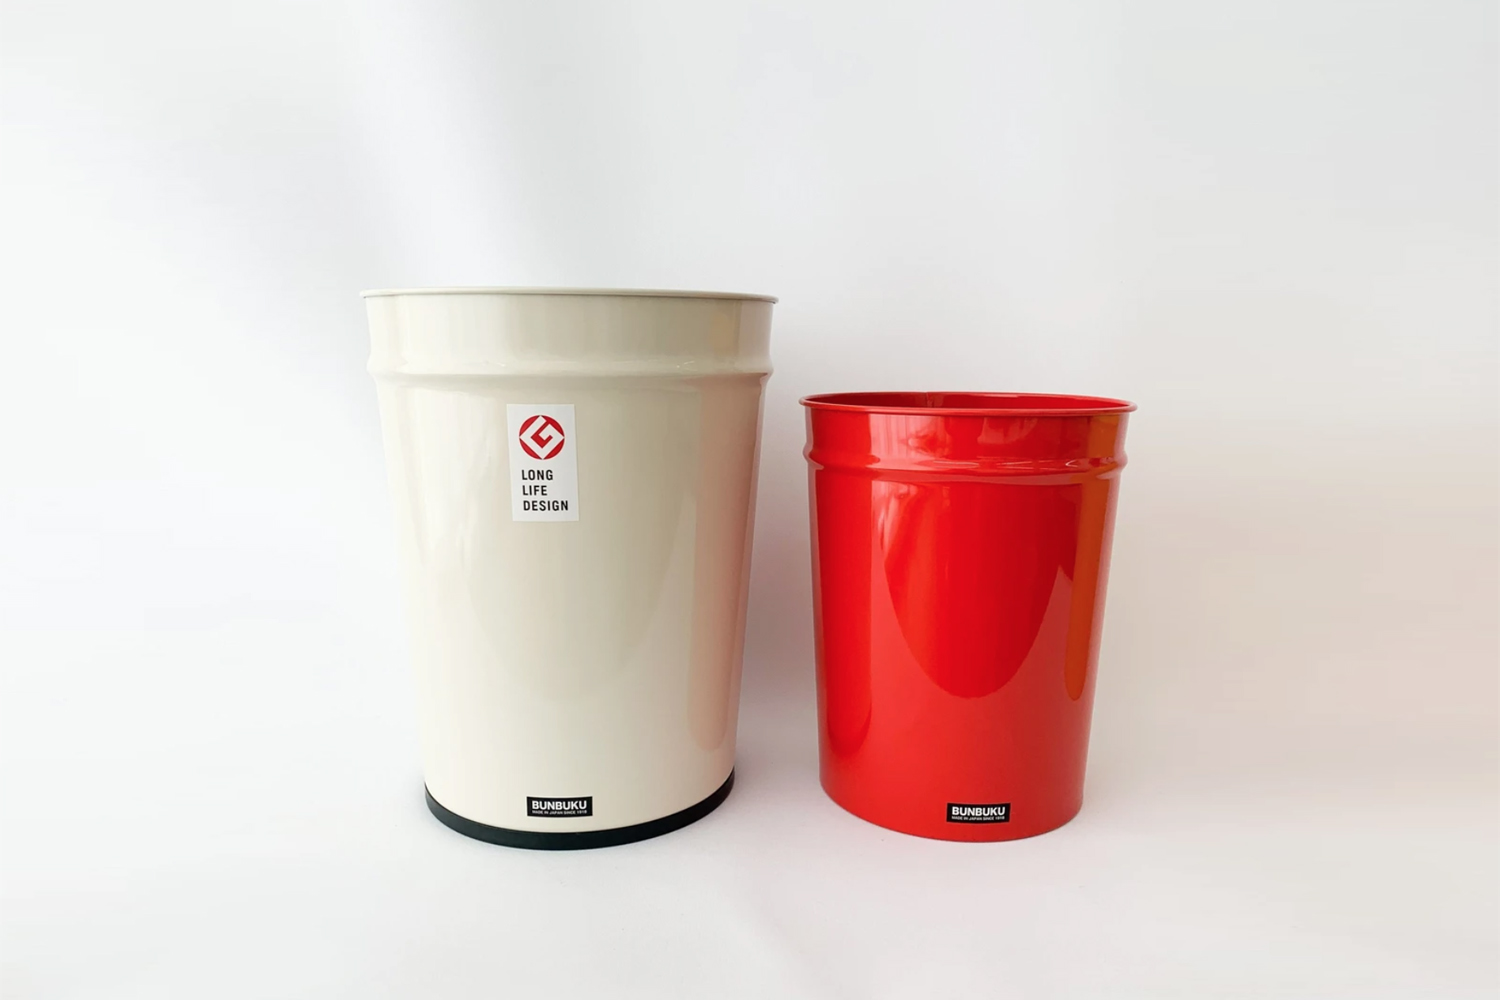 From Japanese company Bunbuku, the Metal Trash Bin is available in two sizes and in grey, white, or red starting at $30 from Tortoise General Store.